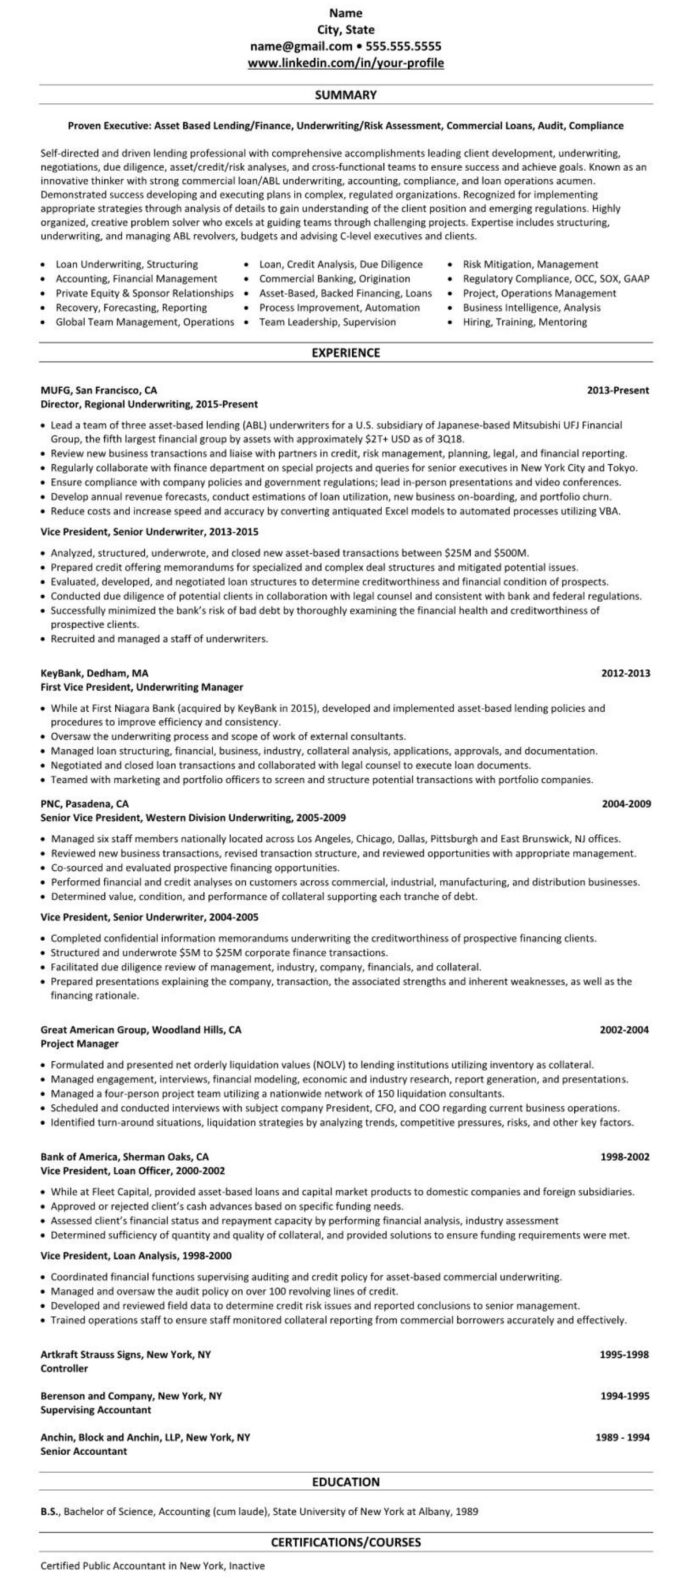 linkedin profile resume example mortgage broker loan officer skills for action words and Resume Mortgage Skills List For Resume